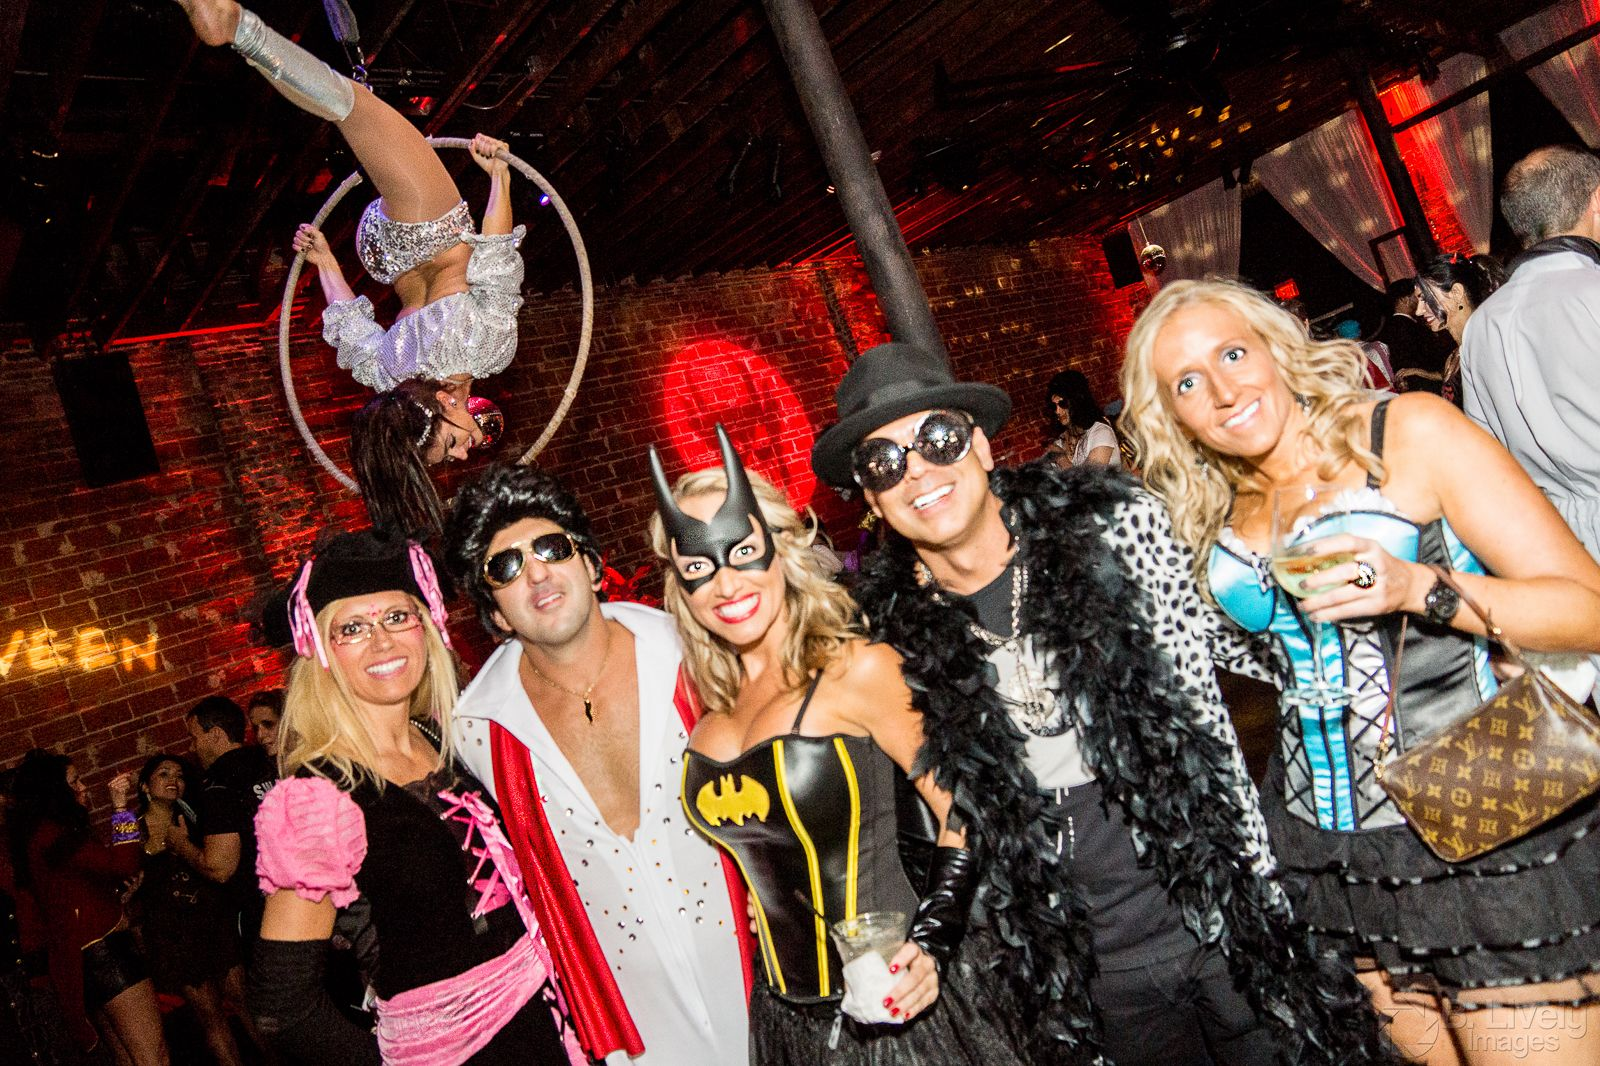 Unique Event Videos from downtown St. Pete Florida historic wedding and event venue NOVA 535 - novaween is st pete favorite halloween costume party